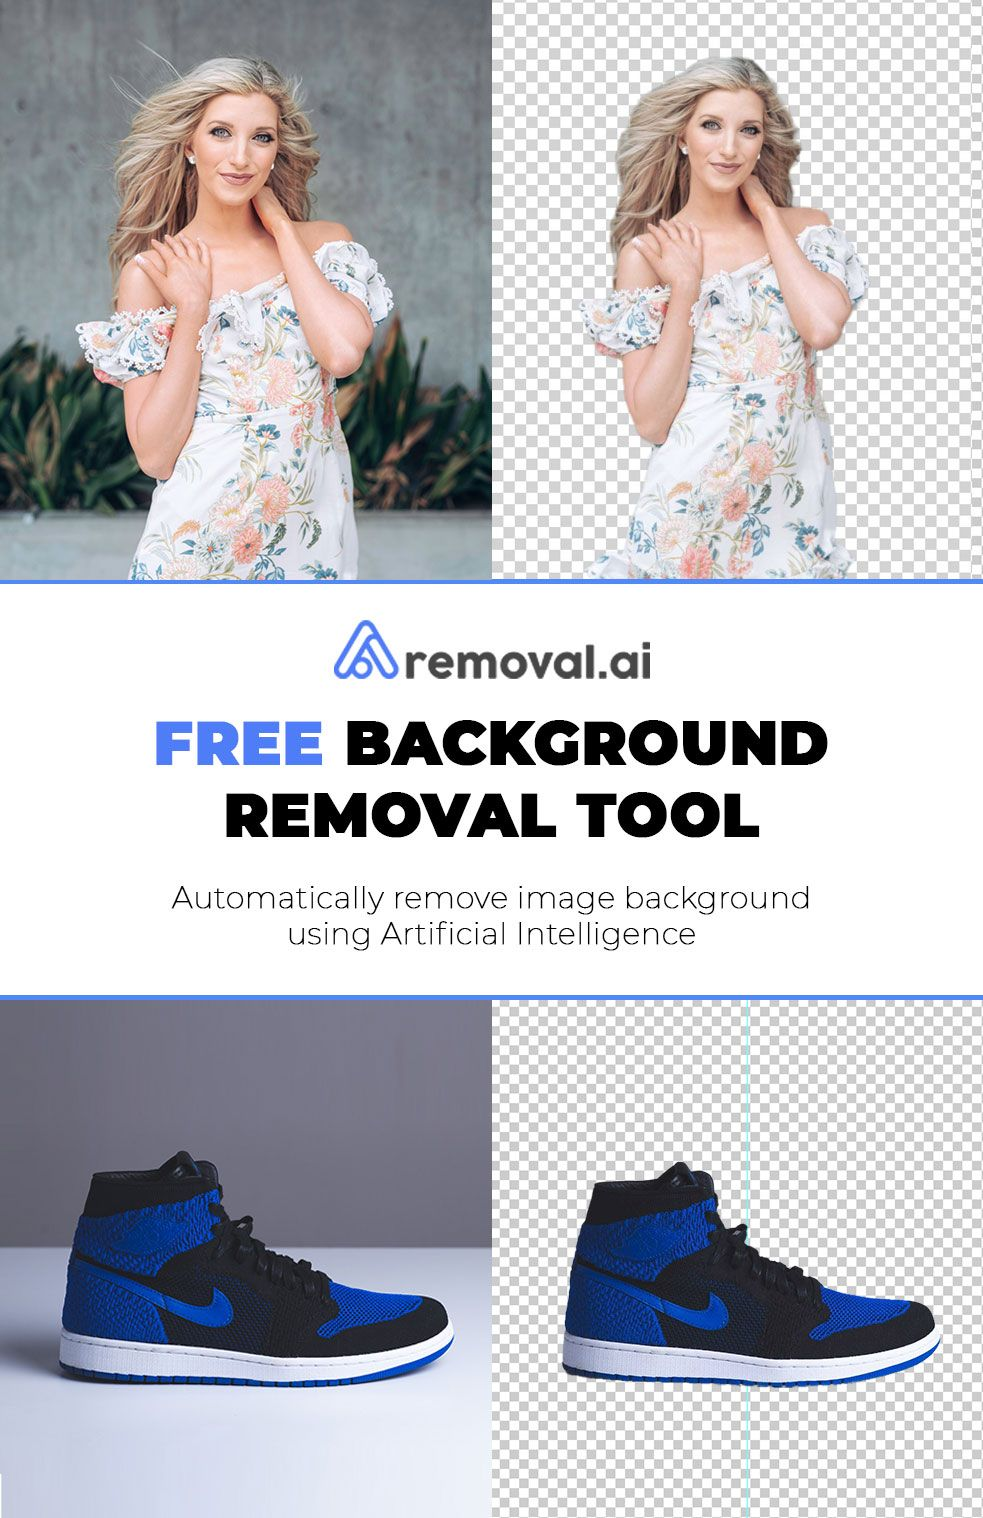 Removal.ai Free Image Background Removal Tool